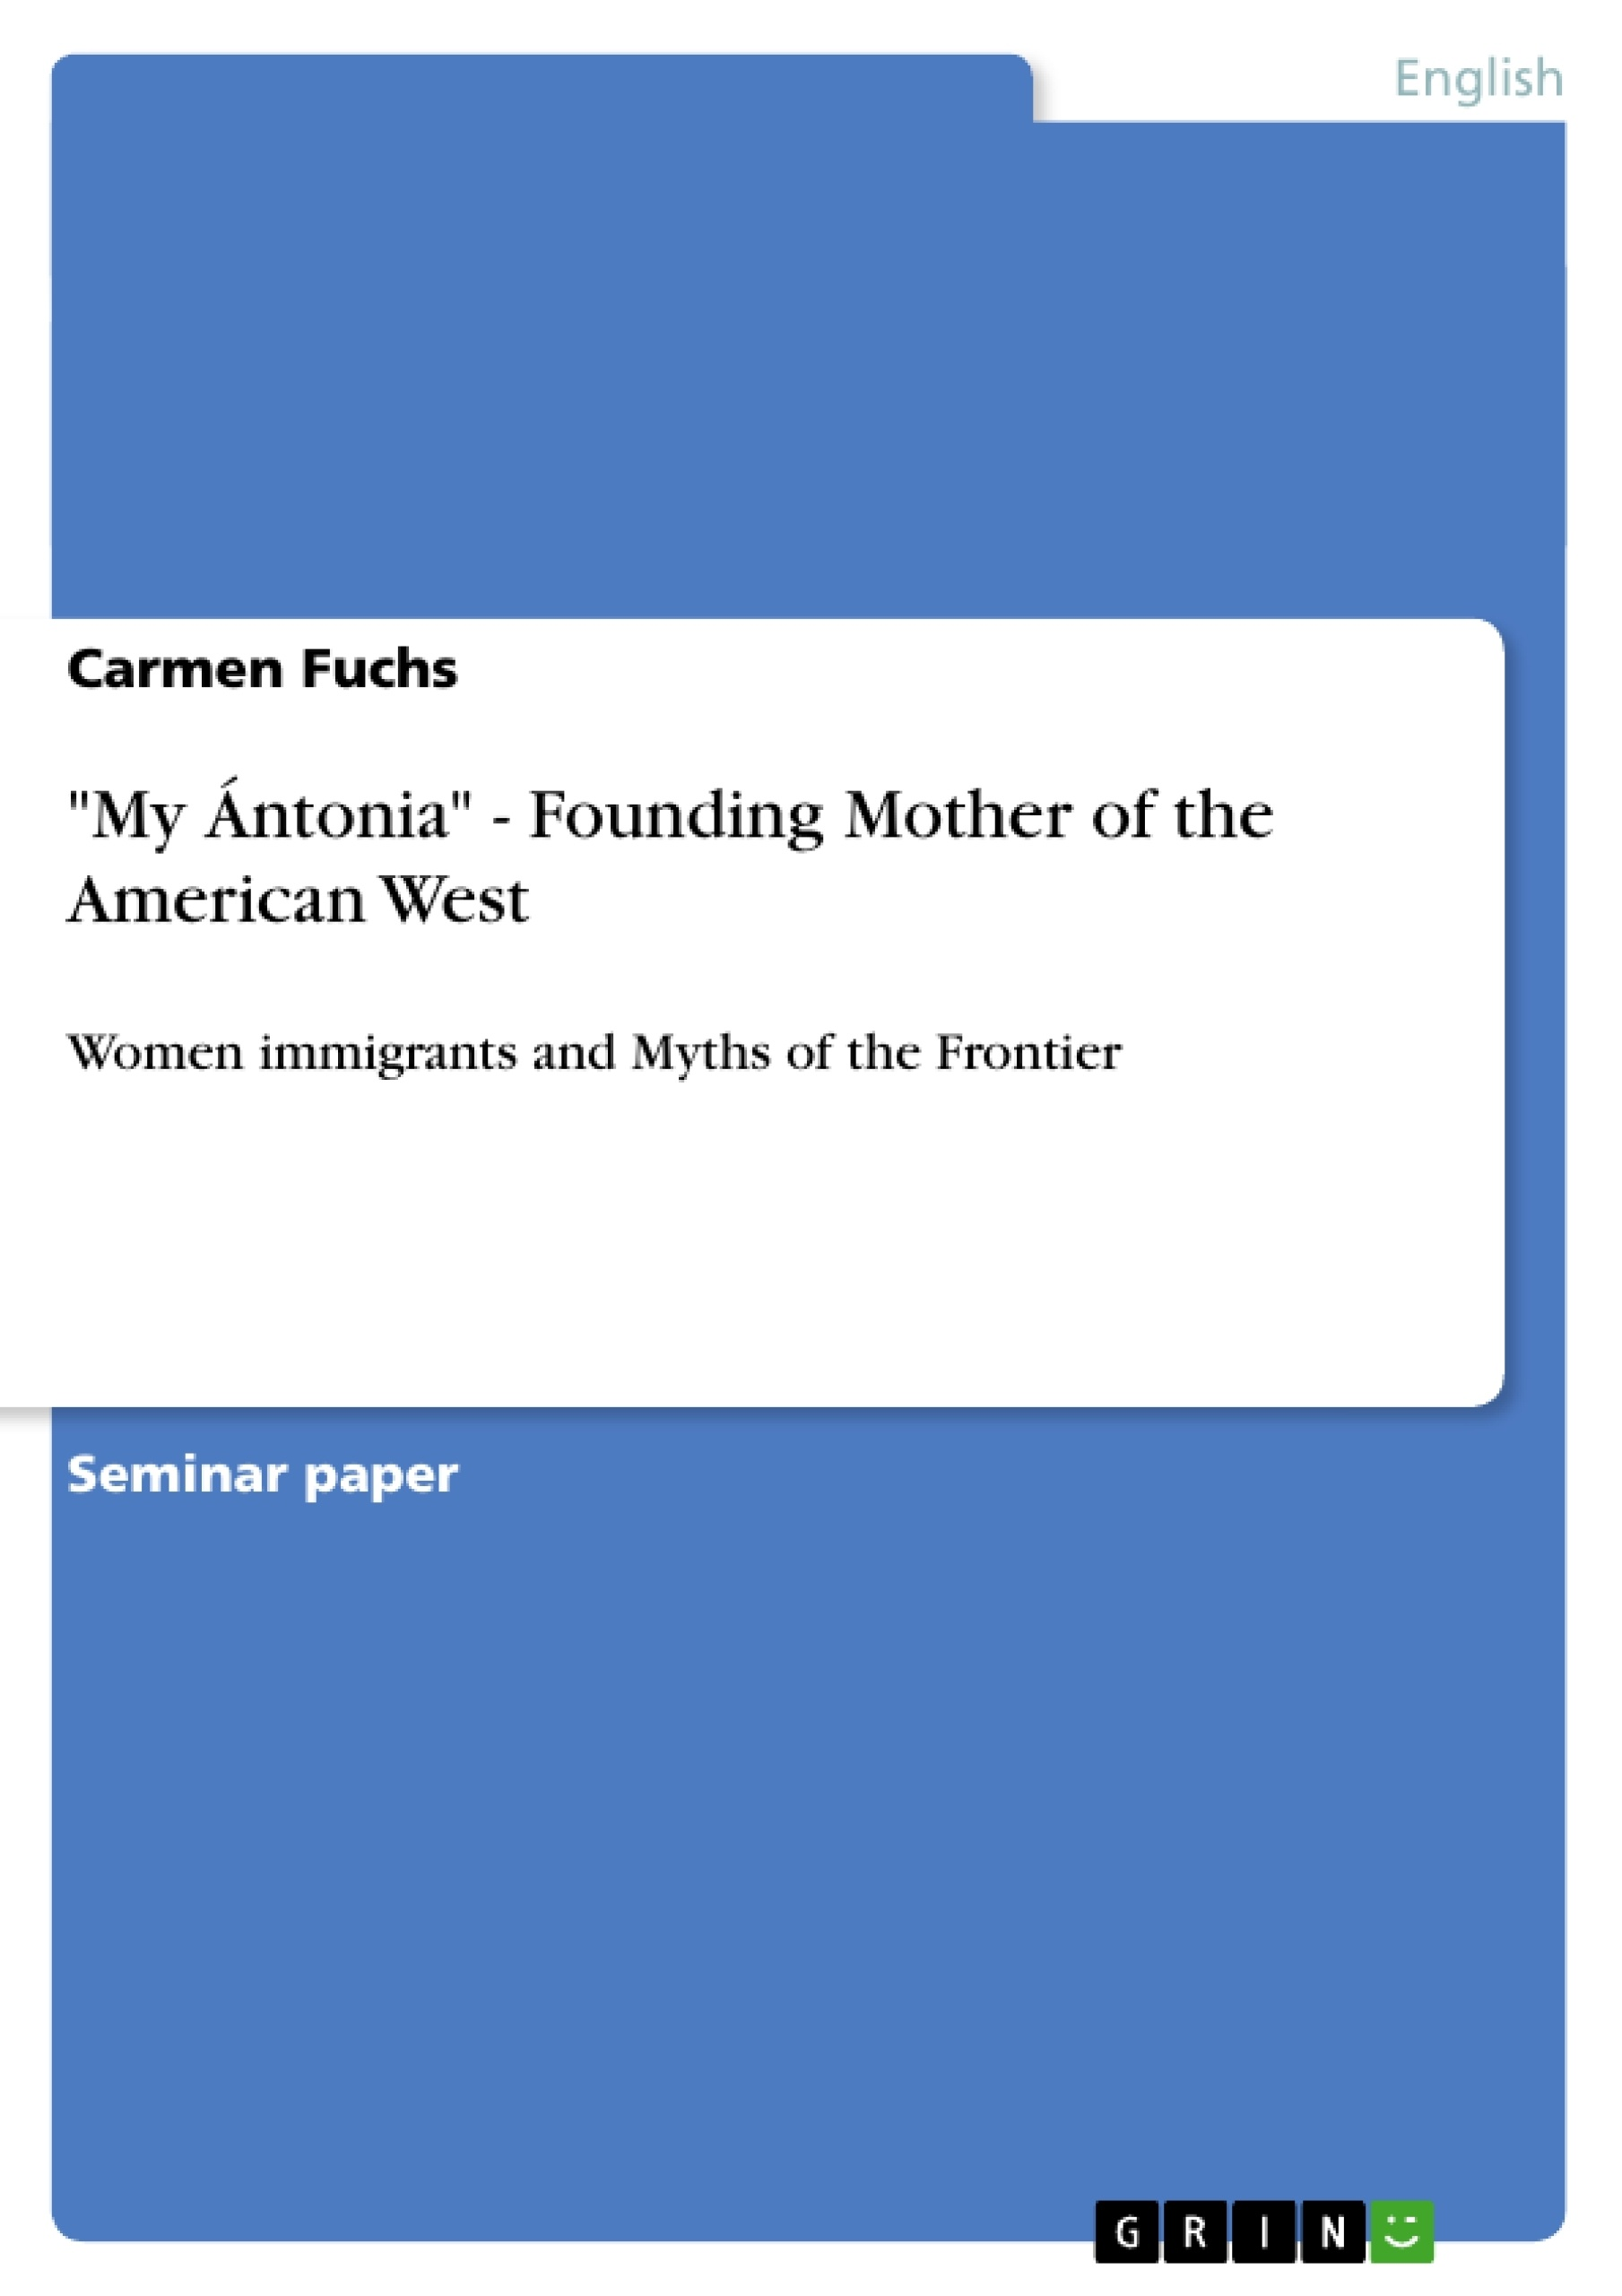 """Title: """"My Ántonia"""" - Founding Mother of the American West"""